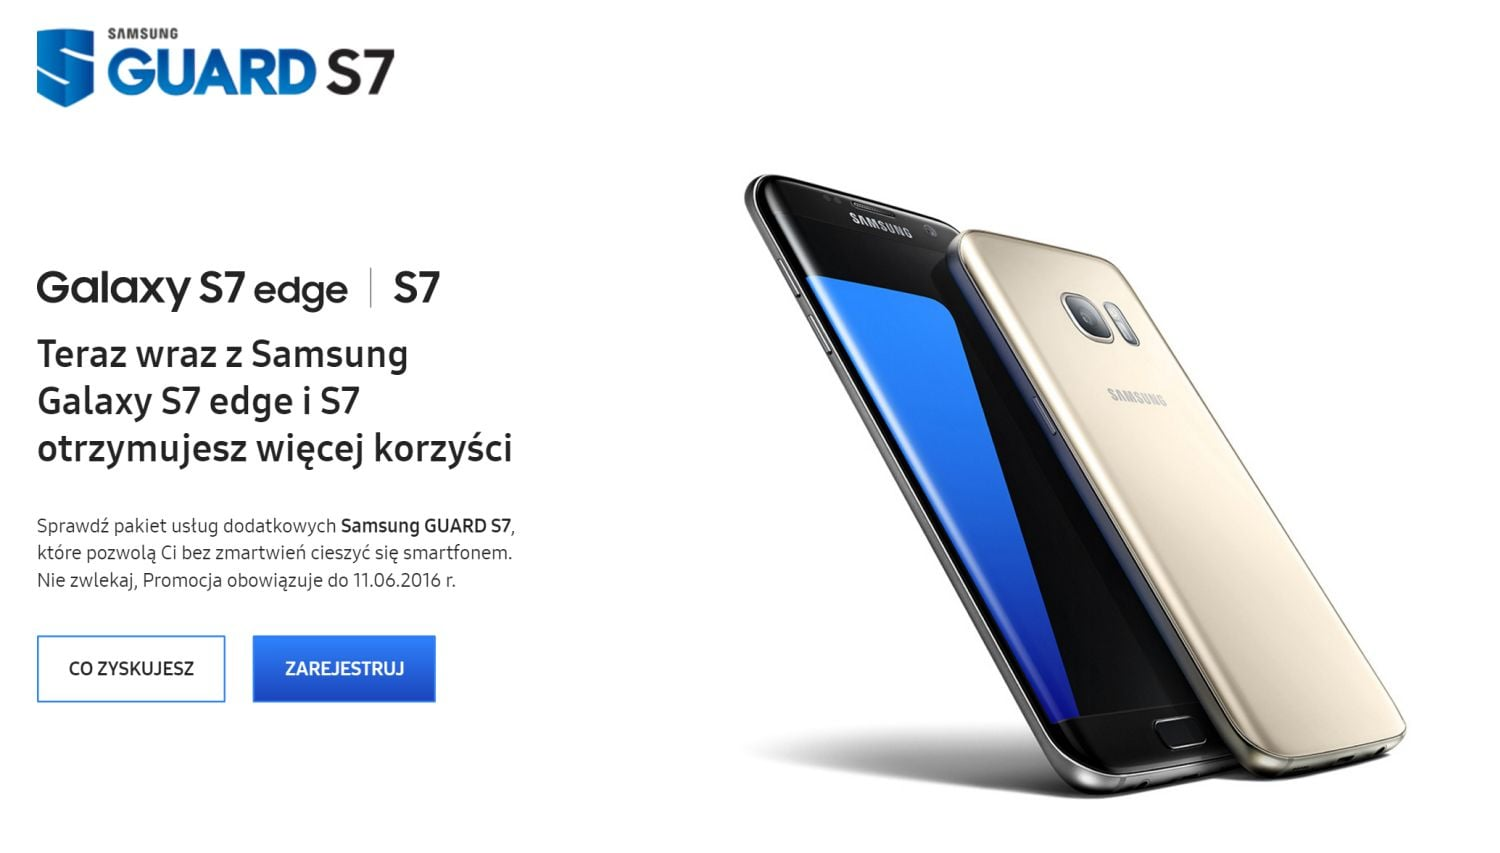 samsung-guard-s7